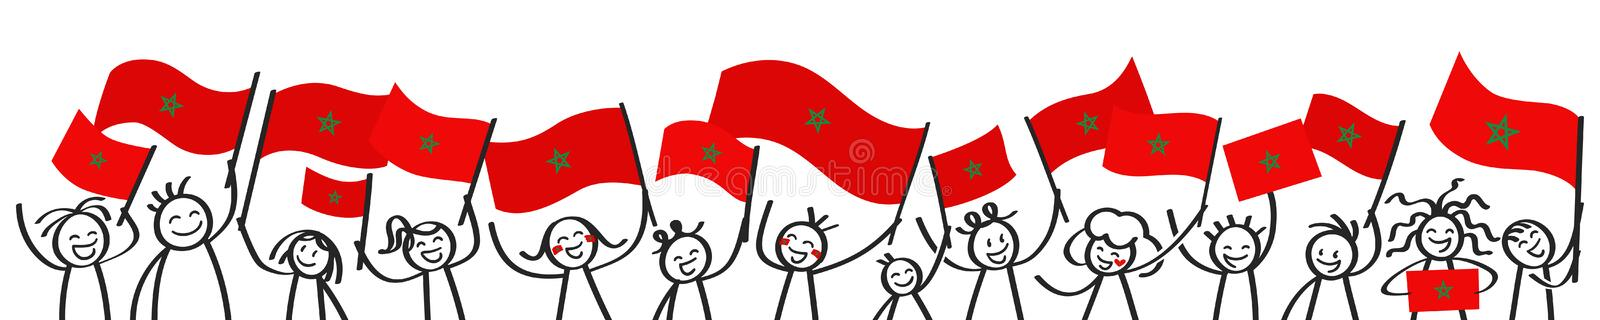 Cheering crowd of happy stick figures with Moroccan national flags, smiling Morocco supporters, sports fans royalty free illustration